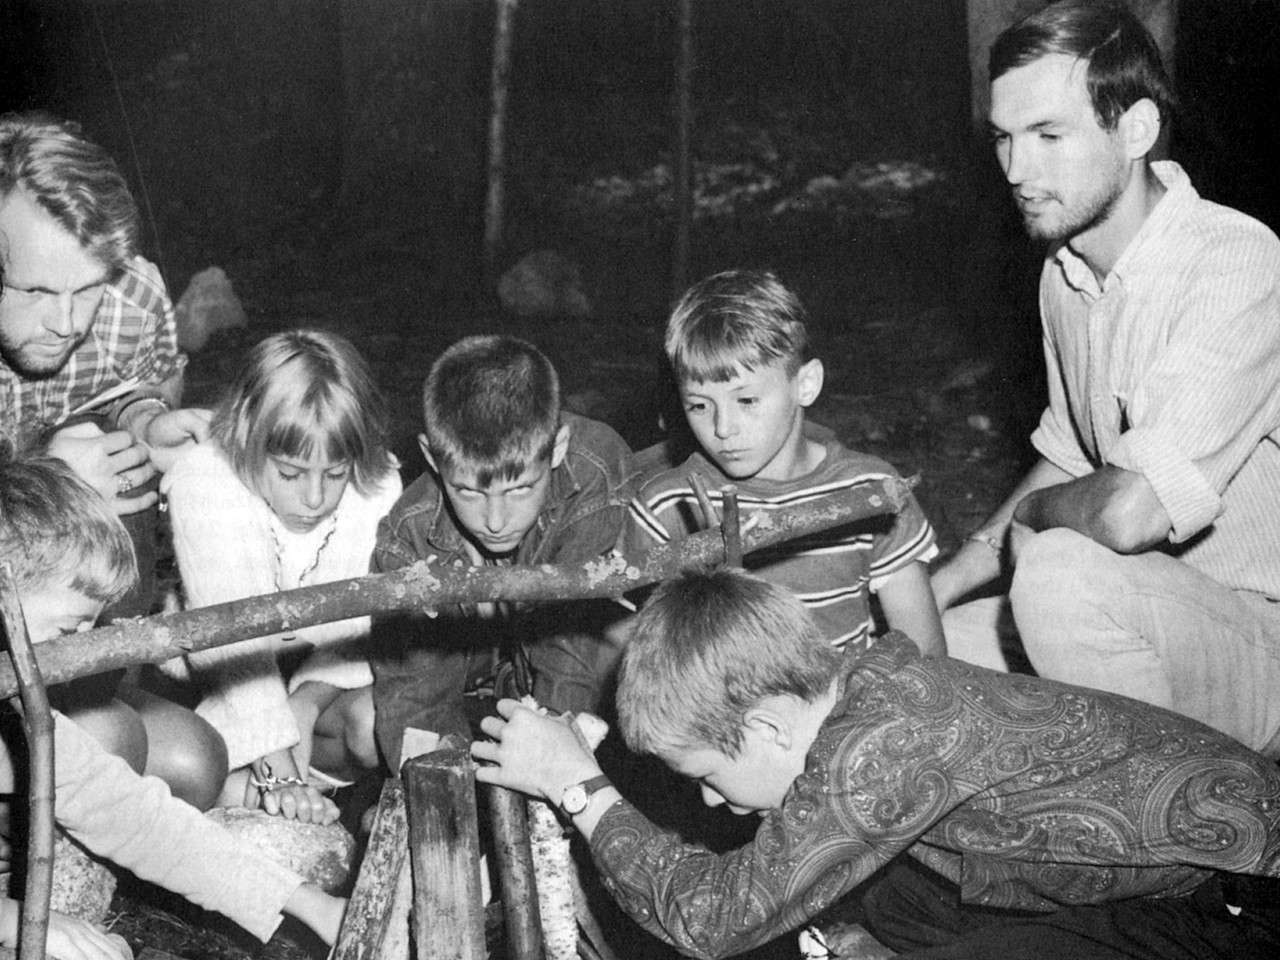 """In 1966, VISTA volunteers began organizing and staffing summer camps across the country for low-income youth. Activities included horseback riding, swimming, scavenger hunts, candle making, sleepouts, cookouts, and nature study. """"We gave the campers a chance to be kids for five days, to discover the country, to be away from the pressures of cars and police and going to the store for mother,"""" said Chuck Koloms, a VISTA volunteer who, in 1968, sold candy in Pittsburgh's City Hall to raise funds to help turn a local estate into Maple Lodge Camp. (© 1968 Corporation for National and Community Service- Office of Public Affairs)"""